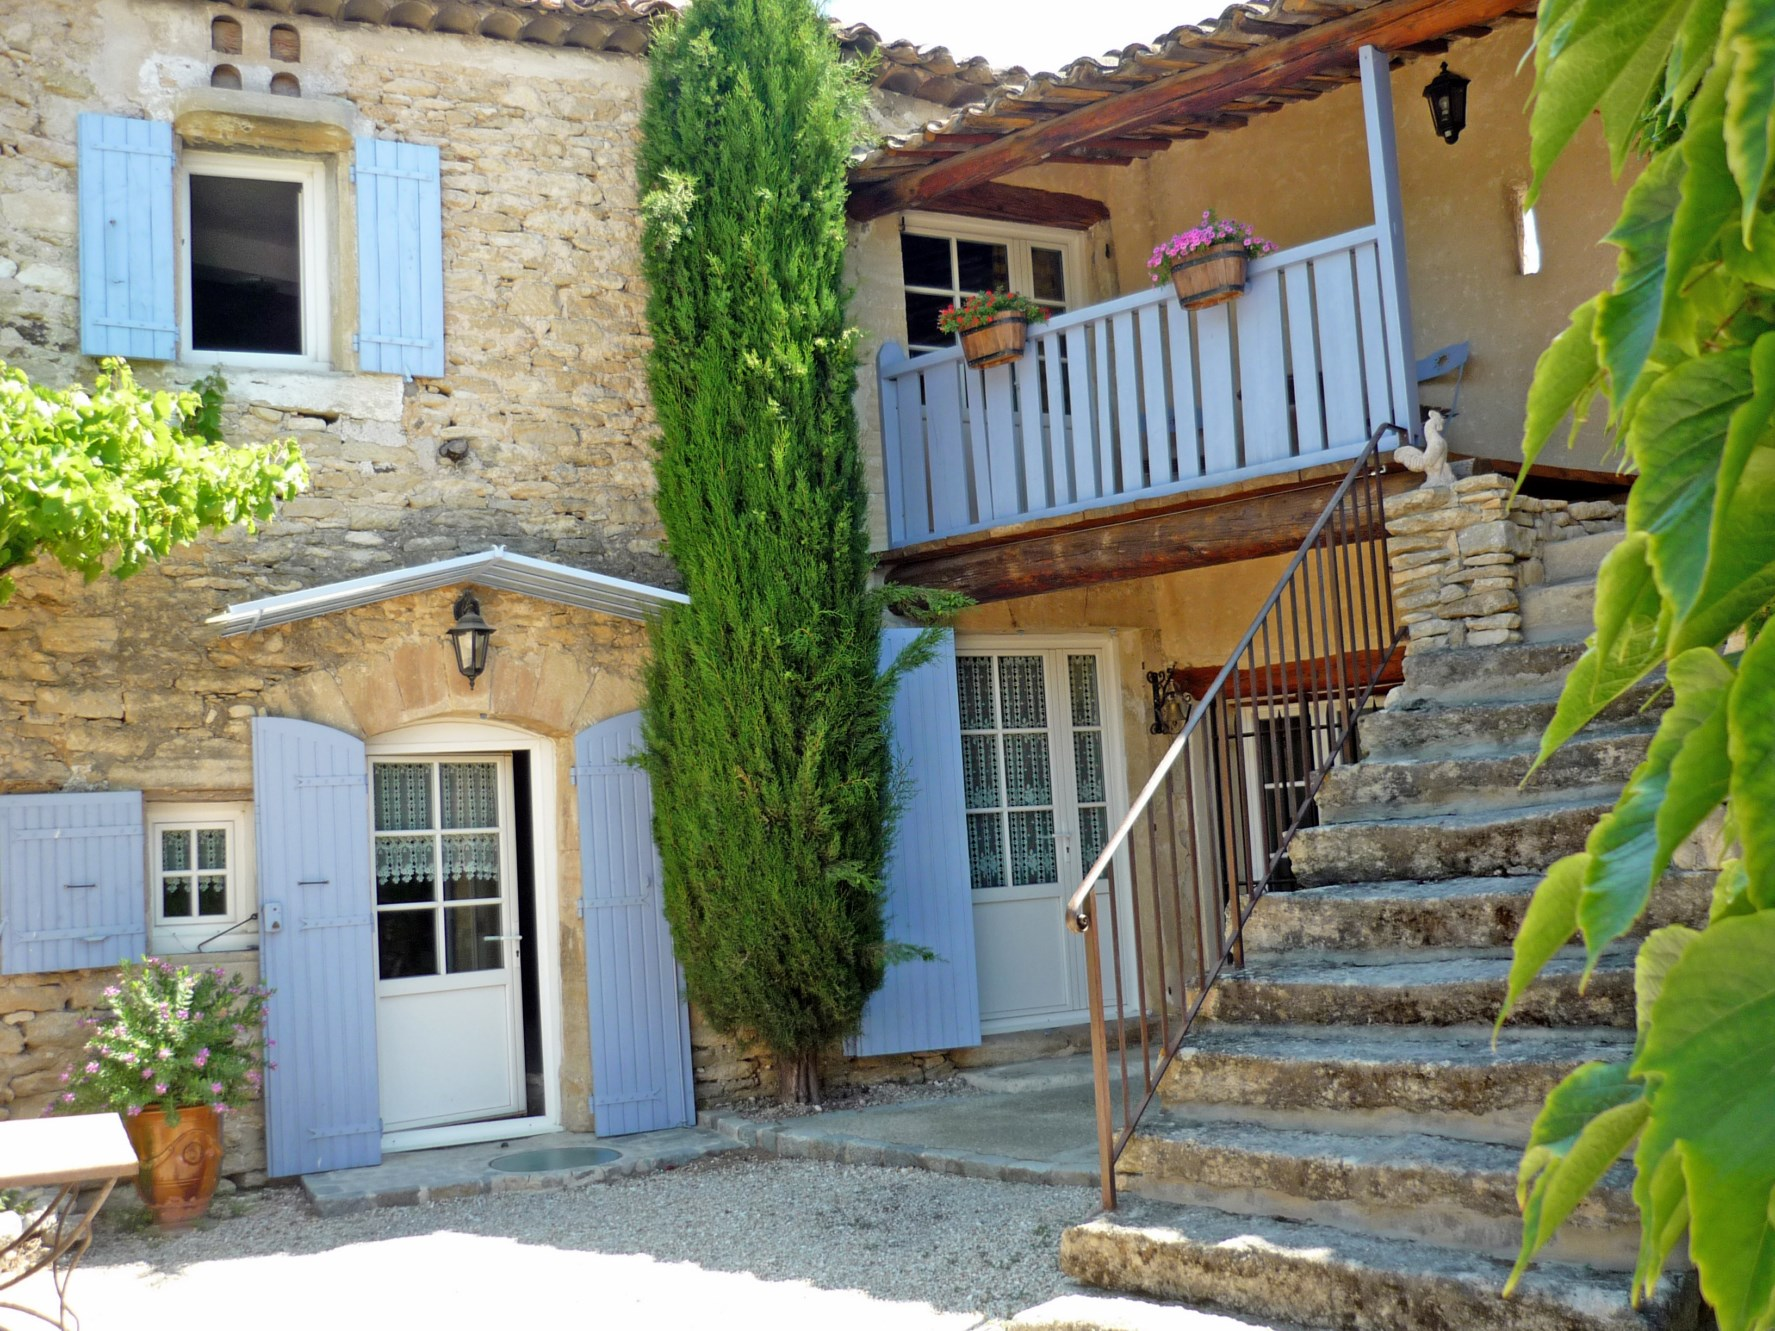 For sale in Gordes authentic part of an old farmhouse entirely renovated with